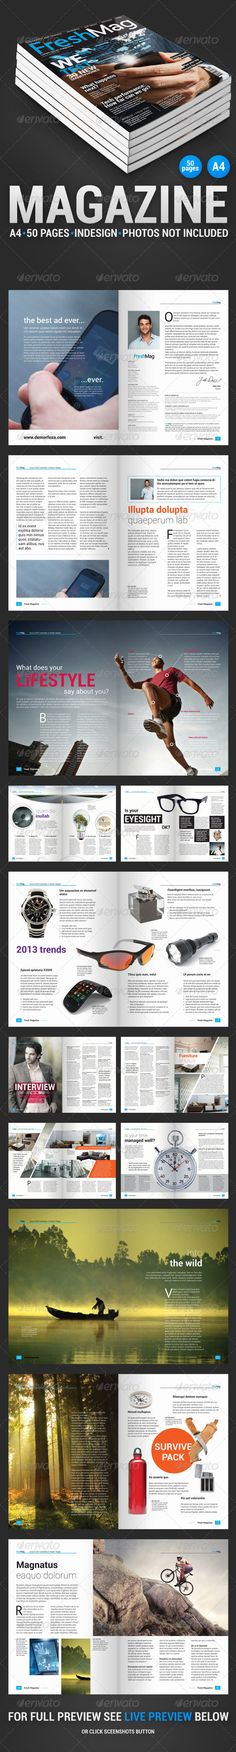 FreshMag 50 Page Magazine — InDesign INDD #professional #text • Available here → https://graphicriver.net/item/freshmag-50-page-magazine/4245093?ref=pxcr